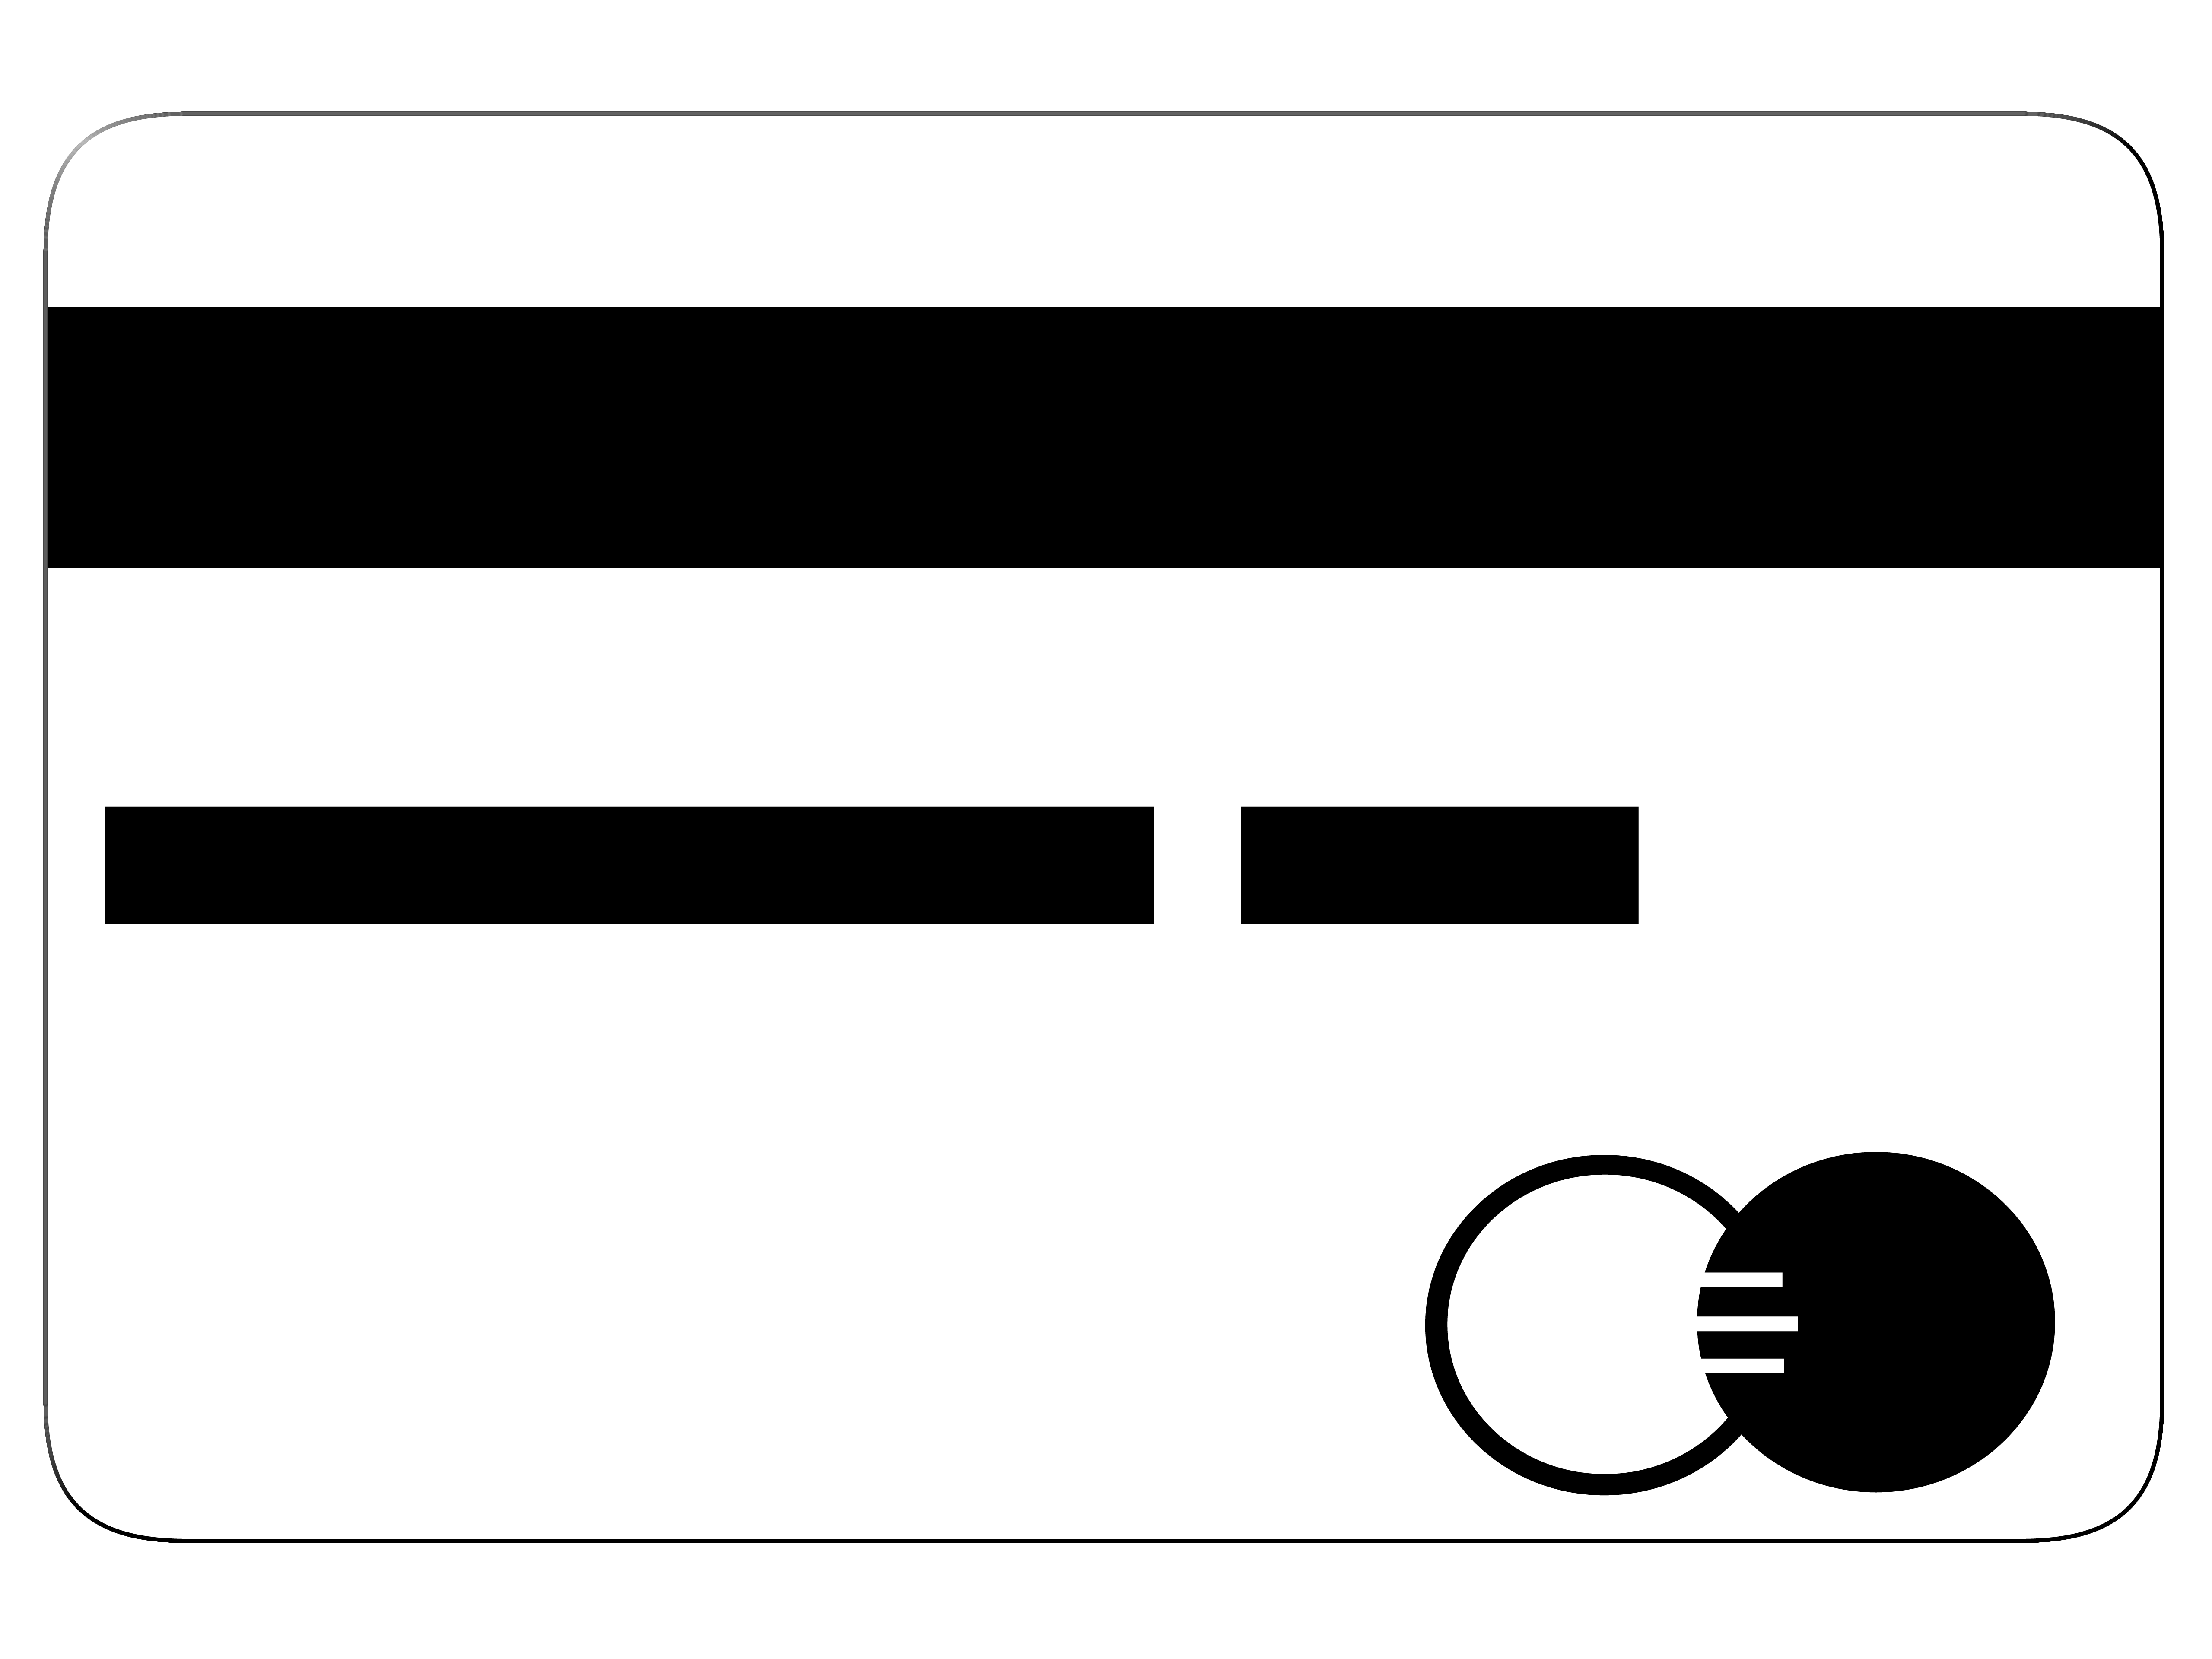 Credit Card in Black and White Color PNG Image